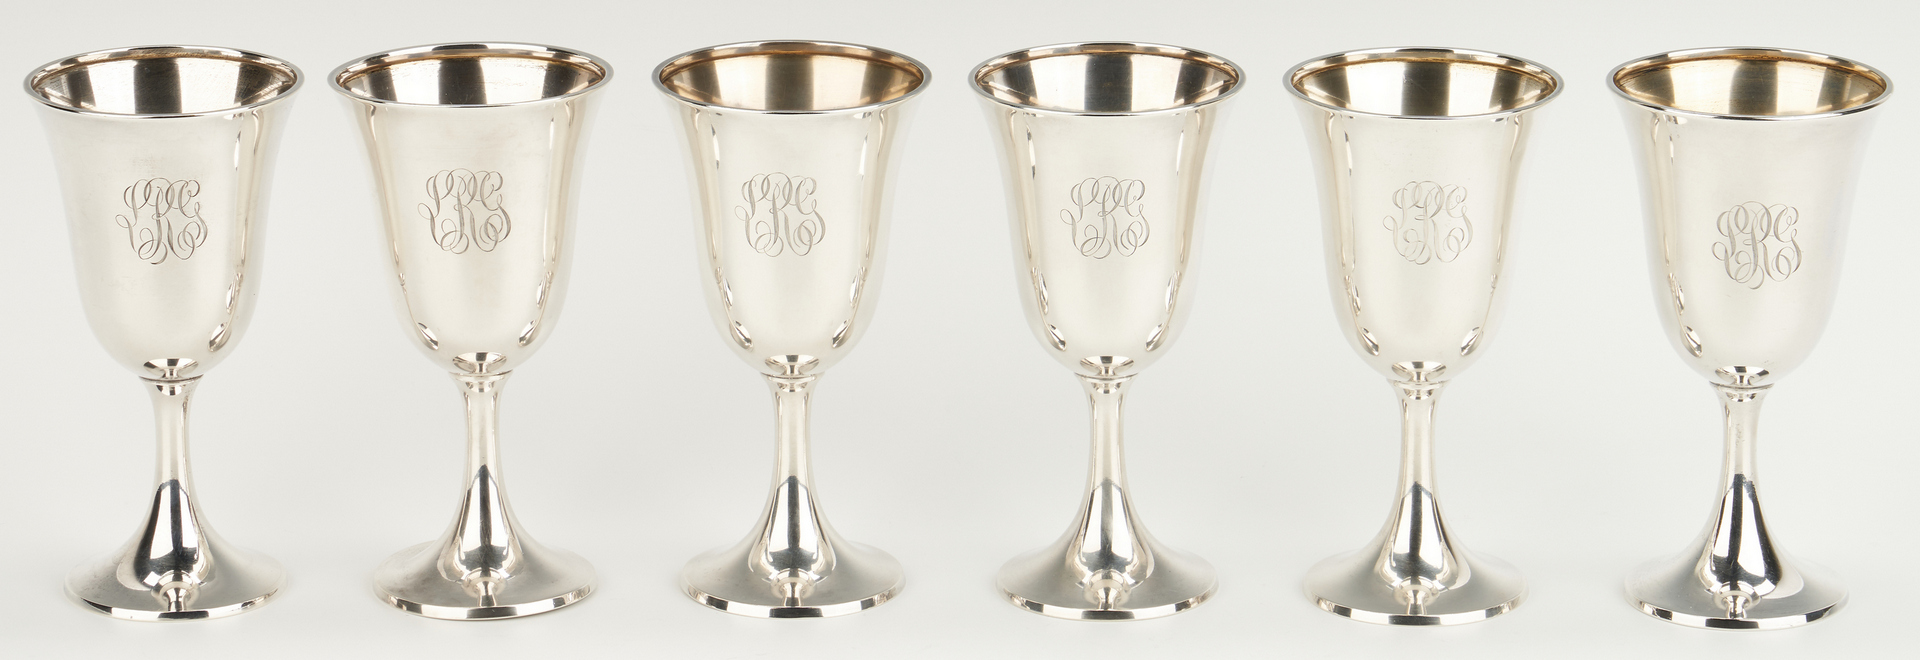 Lot 235: 12 Wallace Sterling Silver Goblets